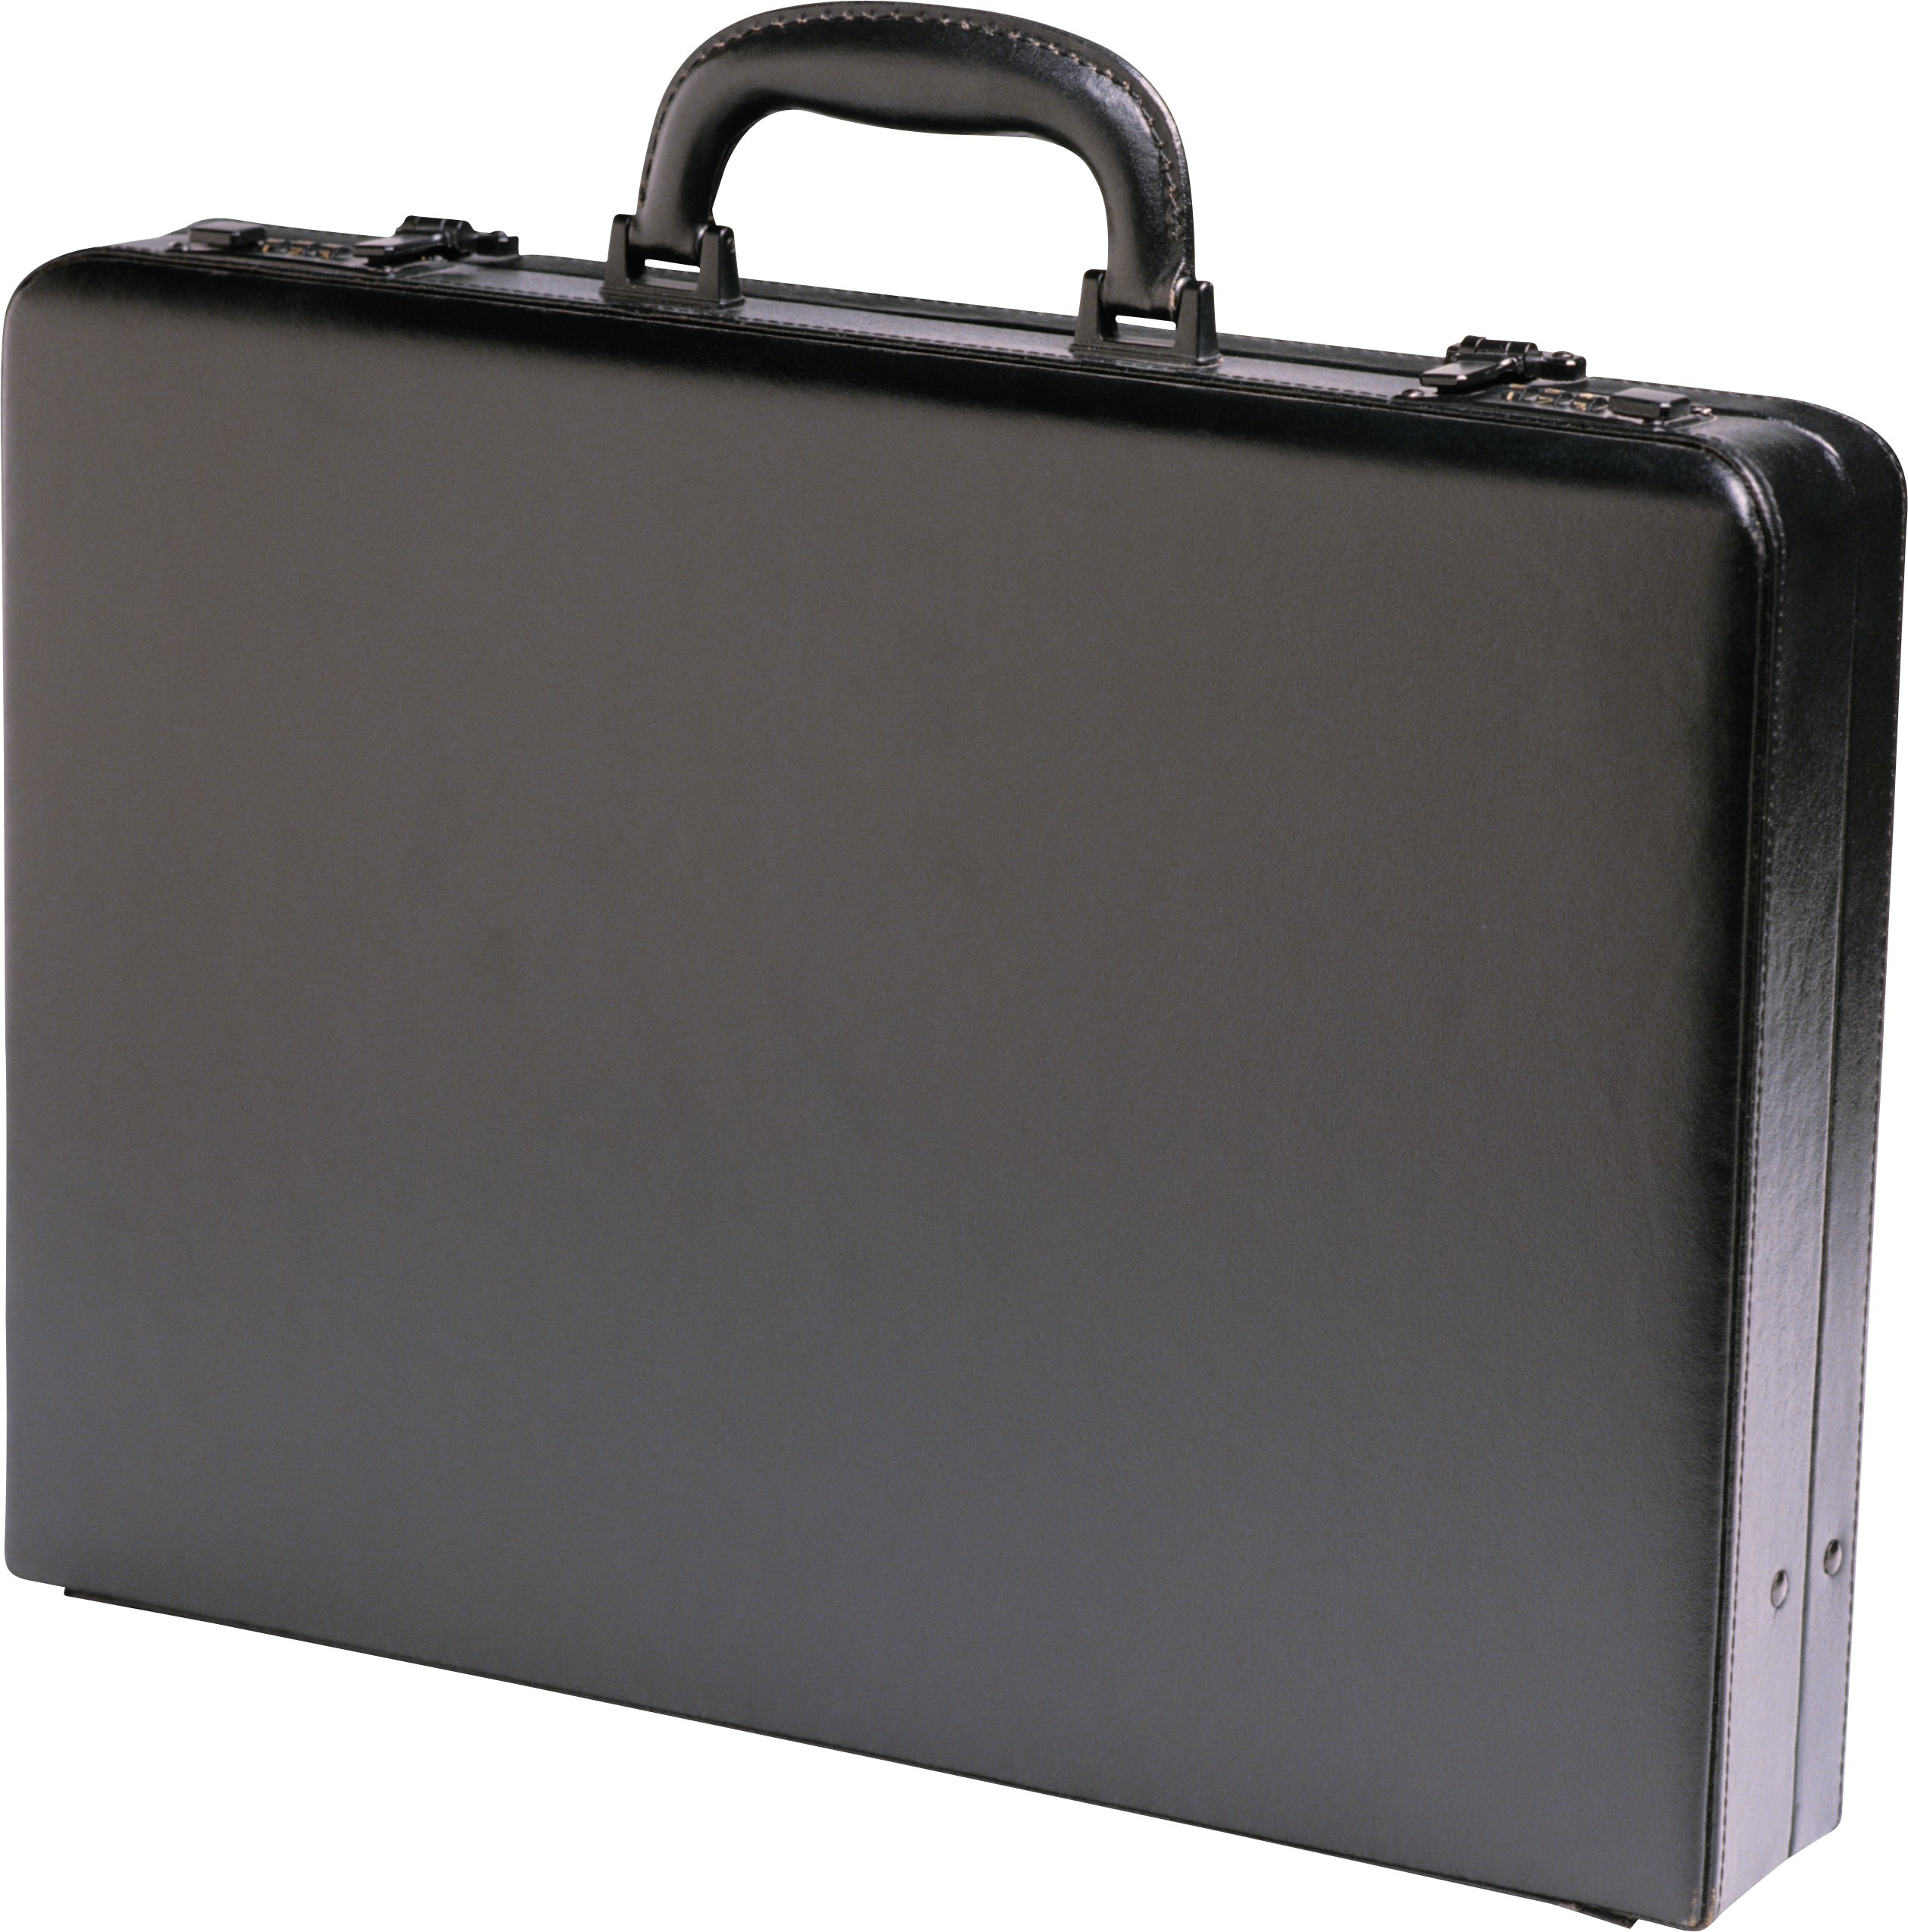 Briefcase HD PNG-PlusPNG.com-2516 - Briefcase HD PNG